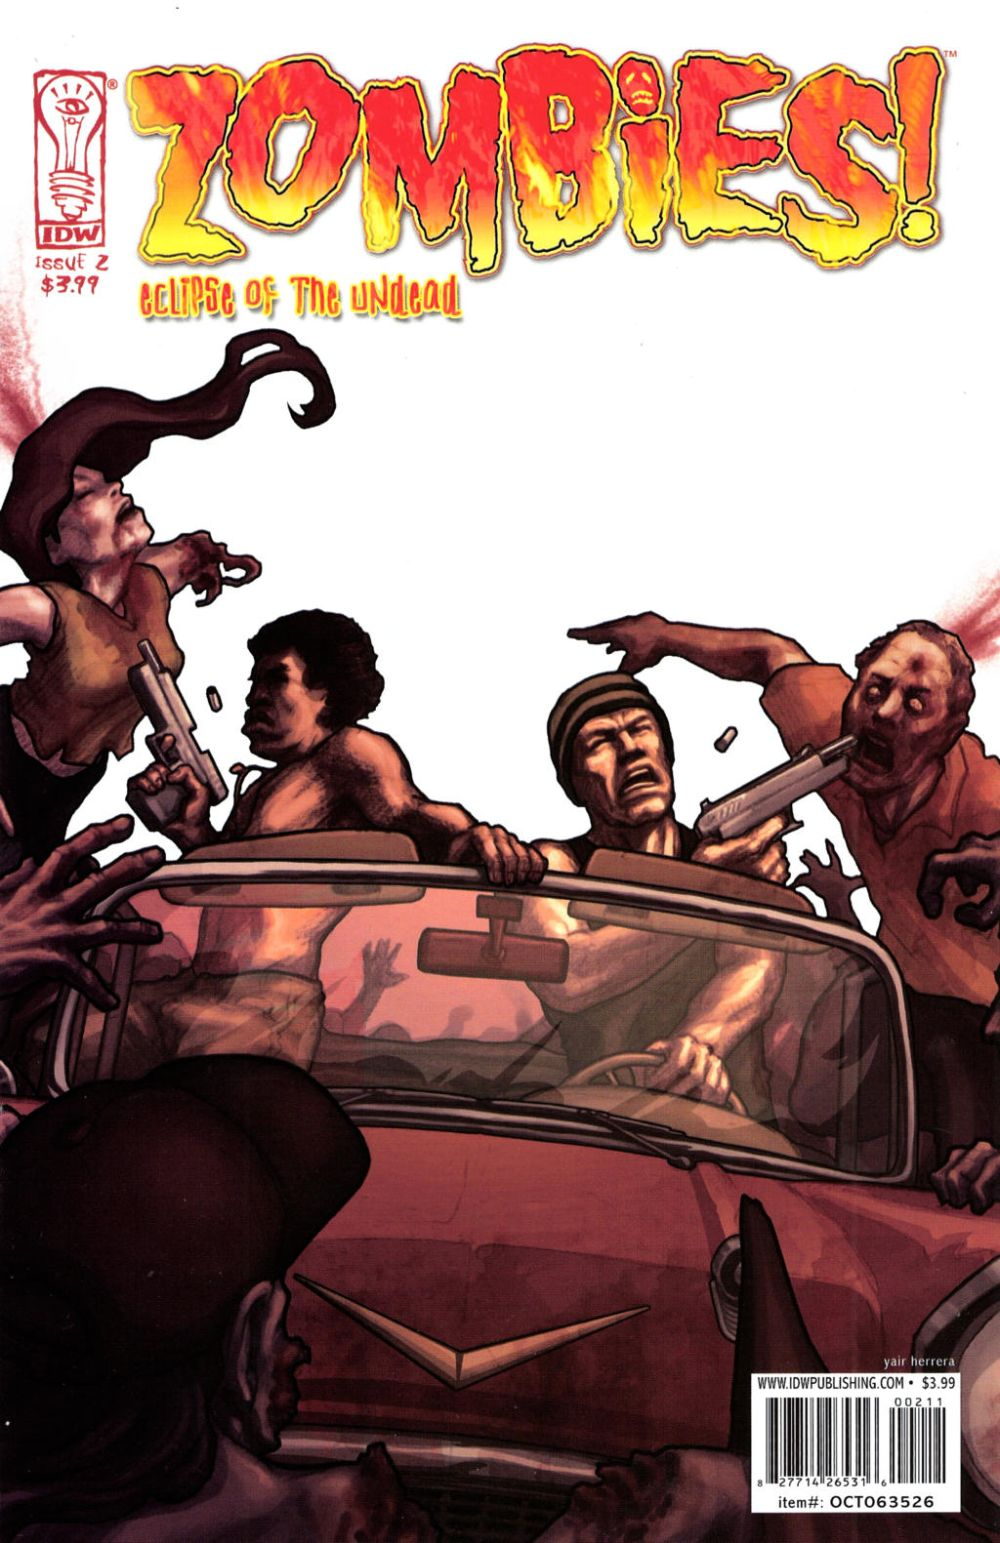 Zombies- Eclipse Of The Undead [IDW] Mini 1 0002.jpg